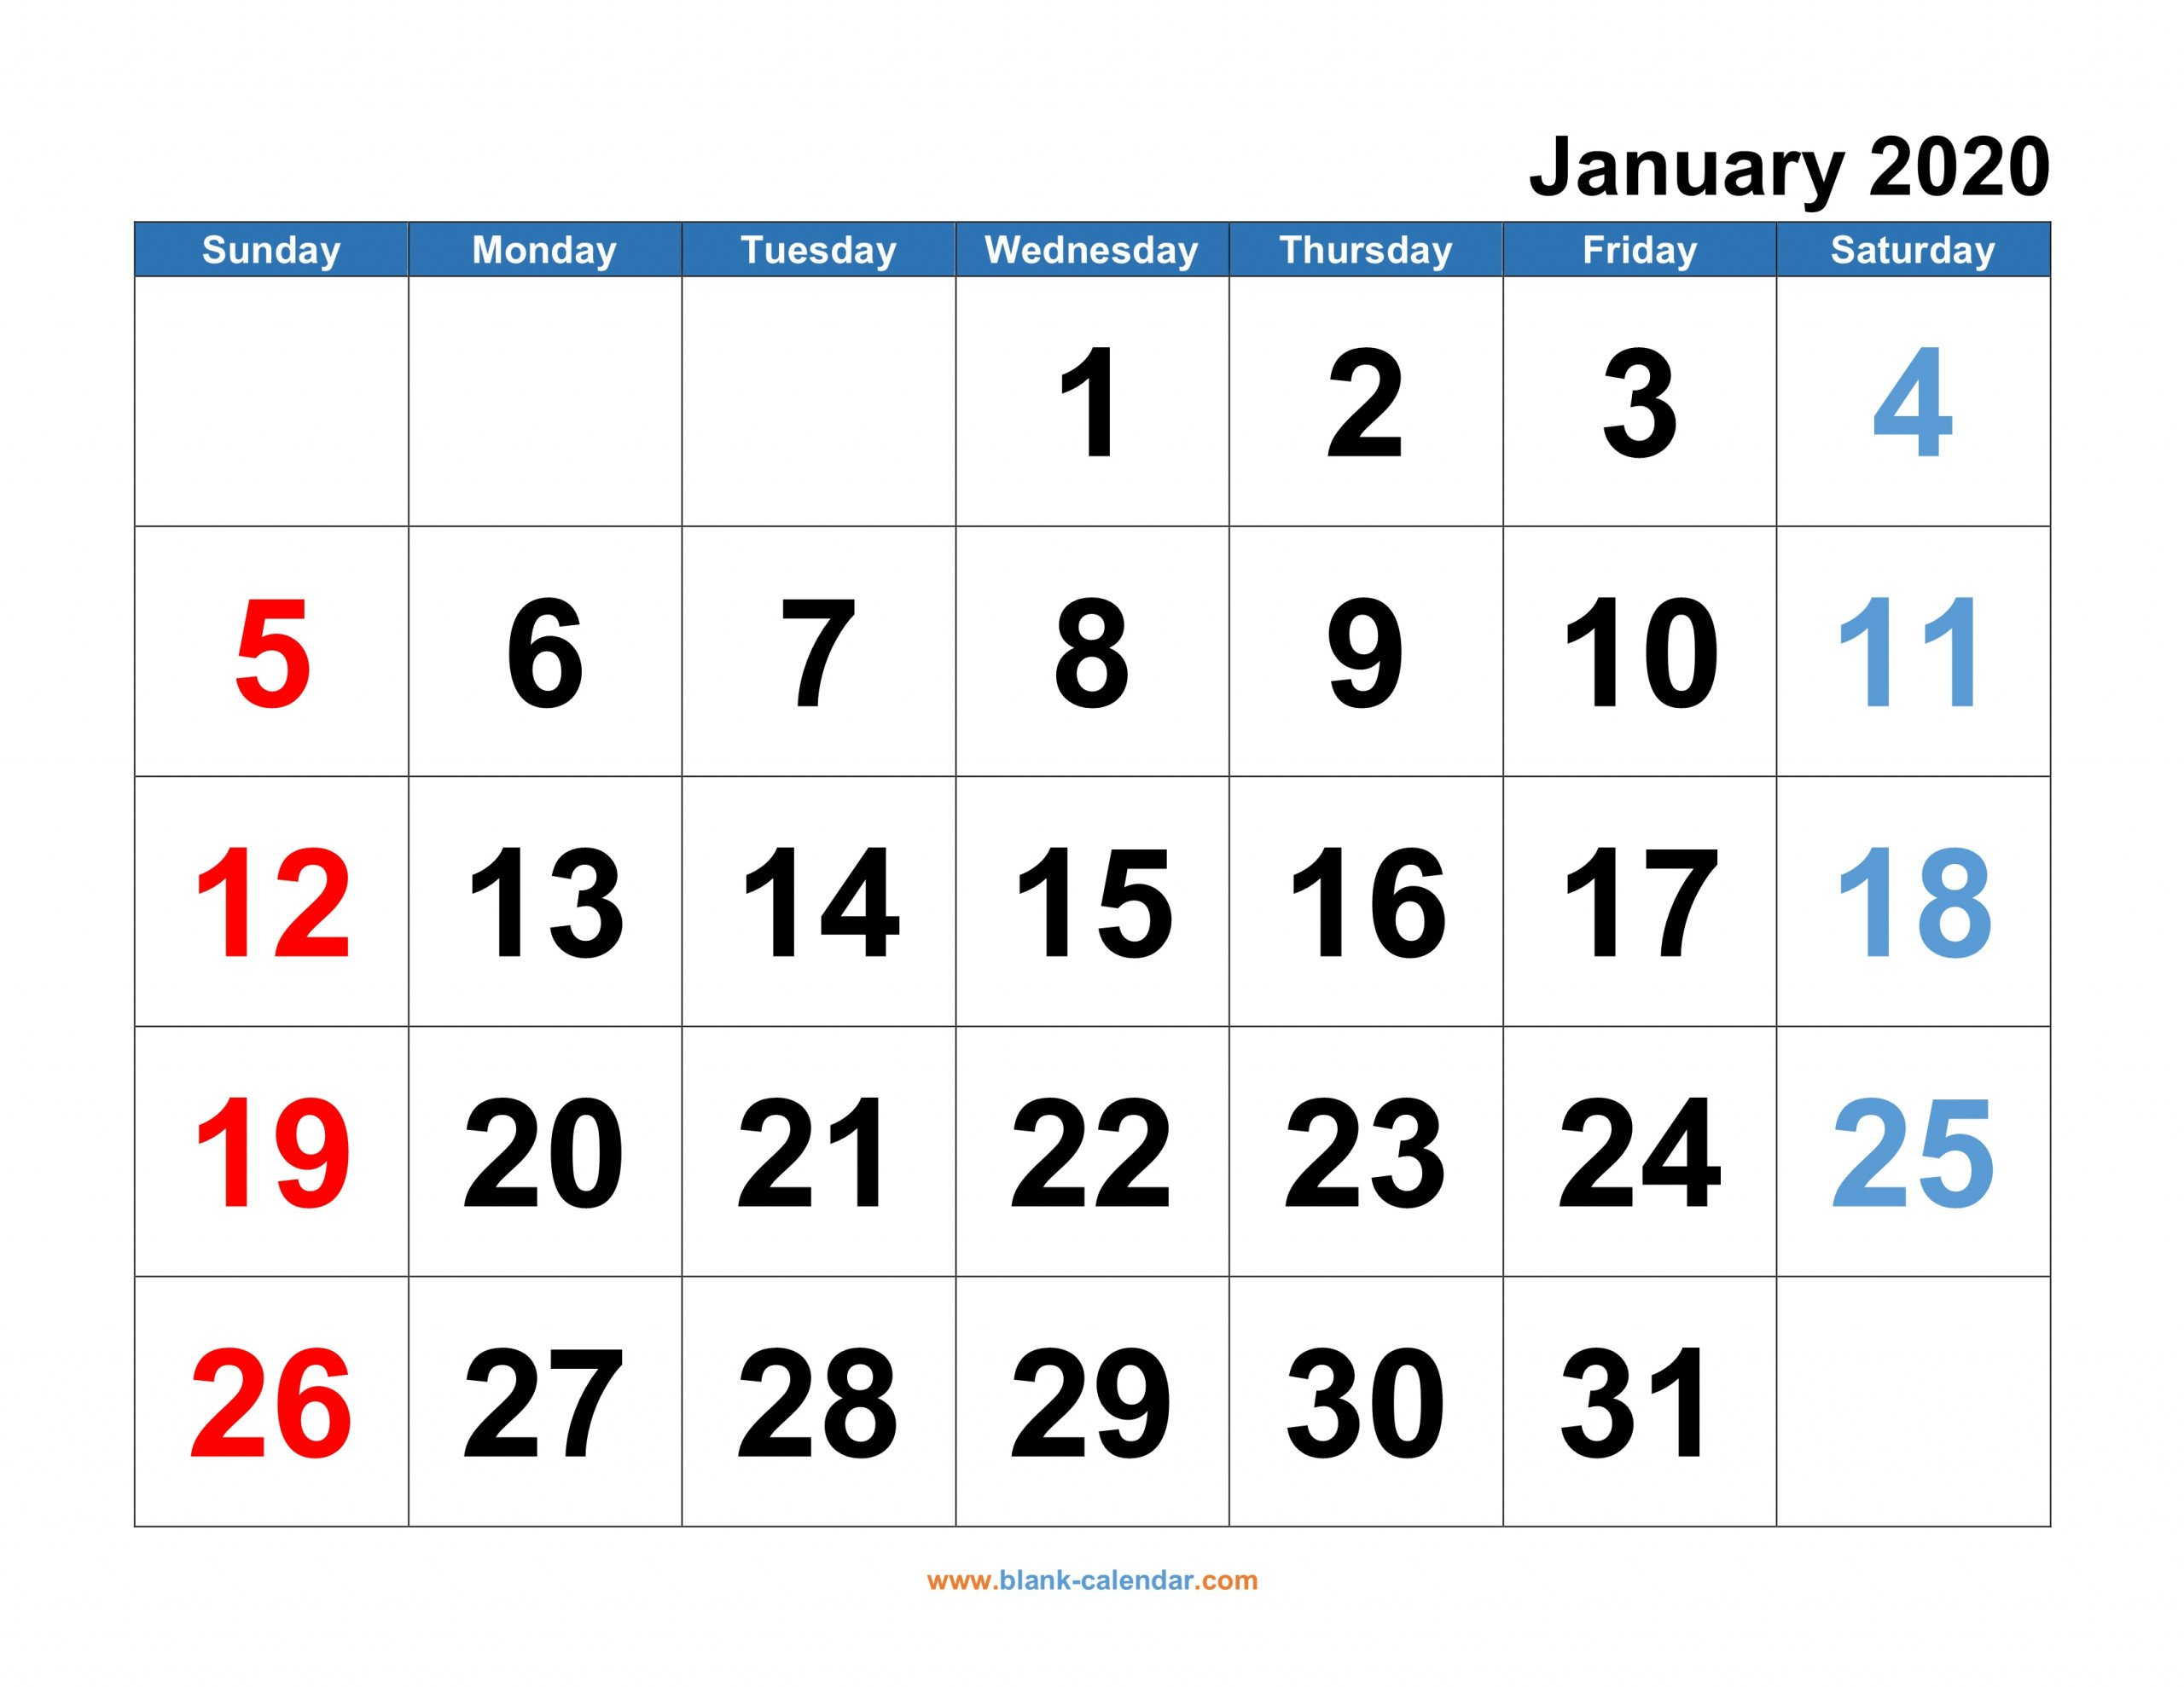 Monthly Calendar 2020   Free Download, Editable And I Need A Monthly Calendar That I Can Edit